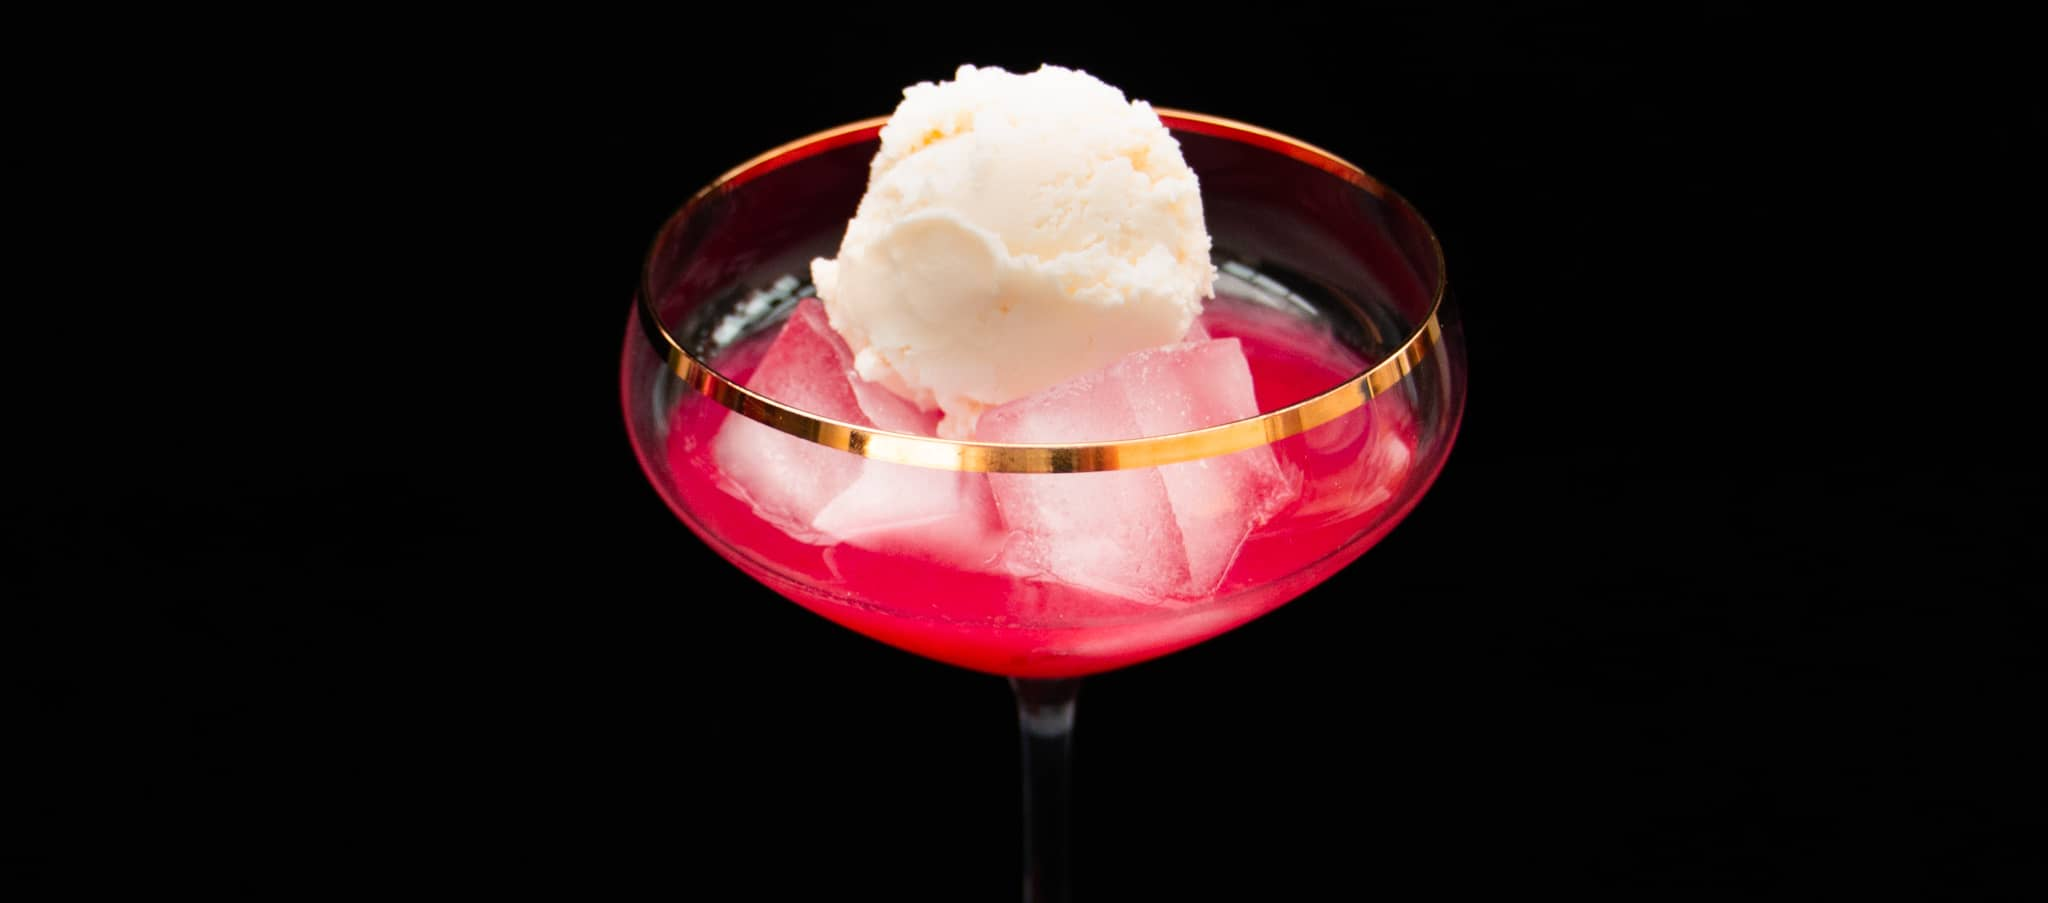 Pink Raspberry Ripple Gin Cocktail with vanilla ice-cream as garnish in centre.